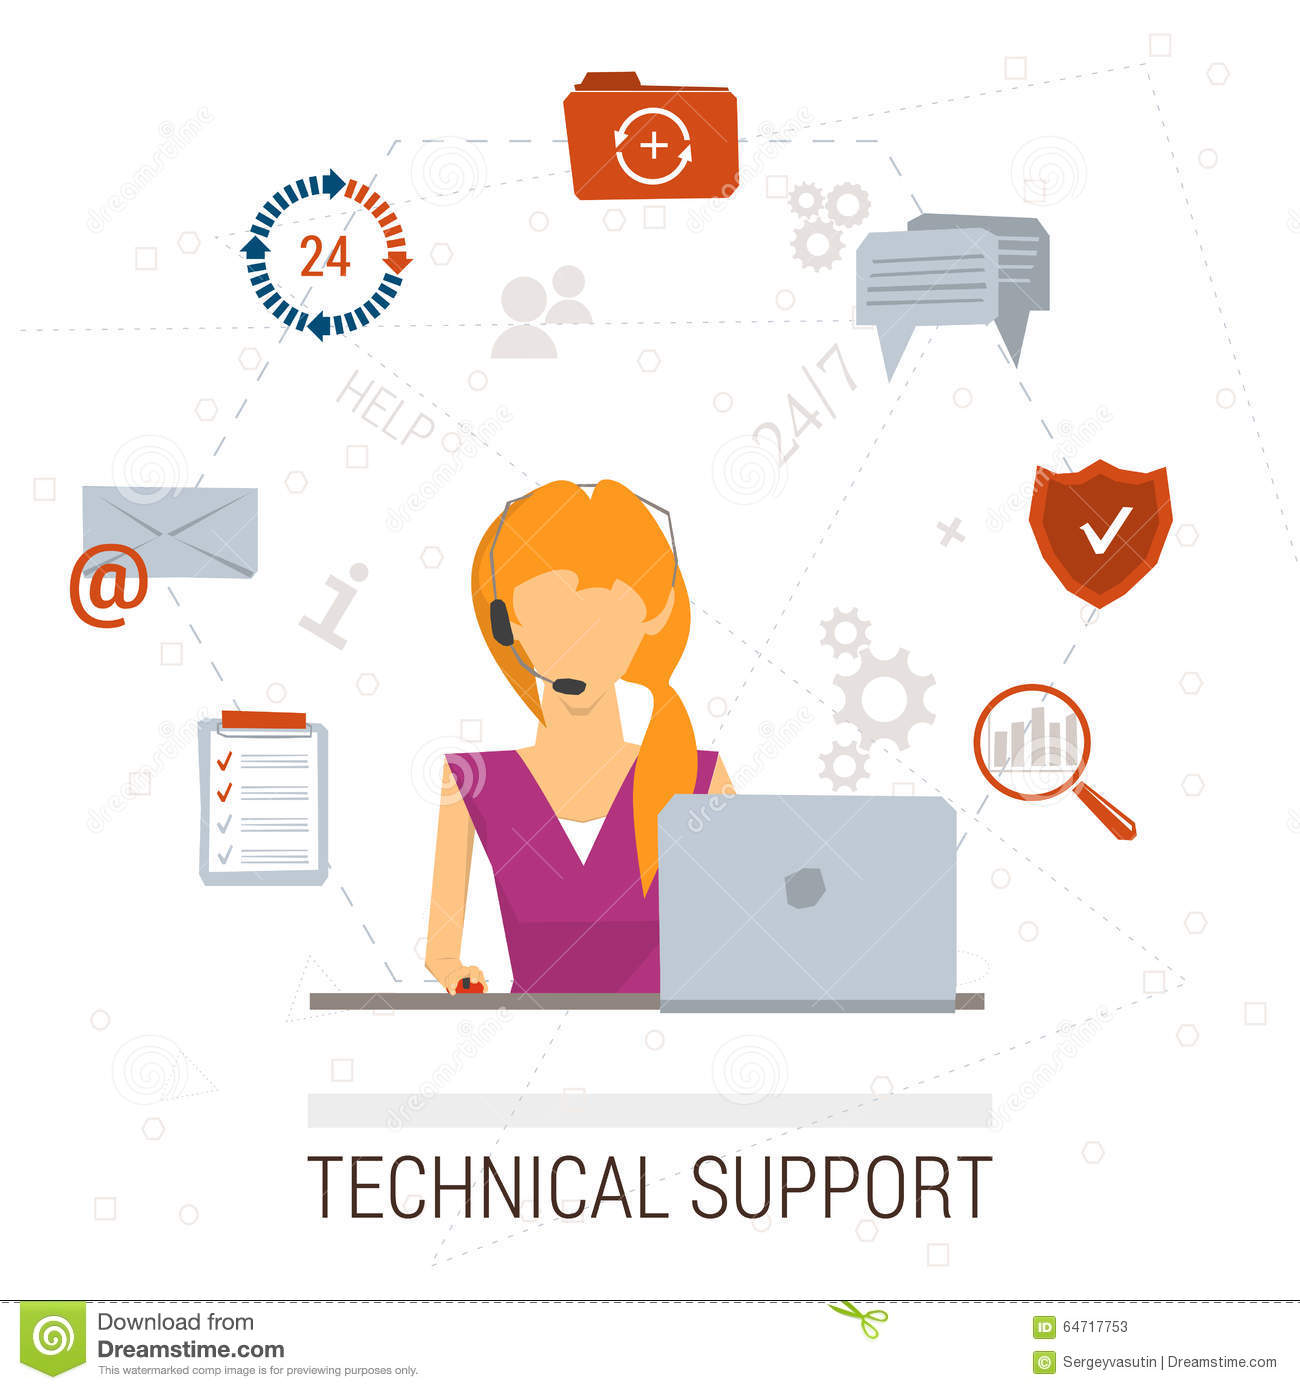 Technical Support Flat Illustration Man And Icons Stock. Ernst And Young Resume Sample. It Resume With No Experience. Cover Latter For Resume. Resume Cover Letter Administrative Assistant. Resume School Leaver. Perfect Sample Resume. Resume Examples For Sales. Resume Examples Summary